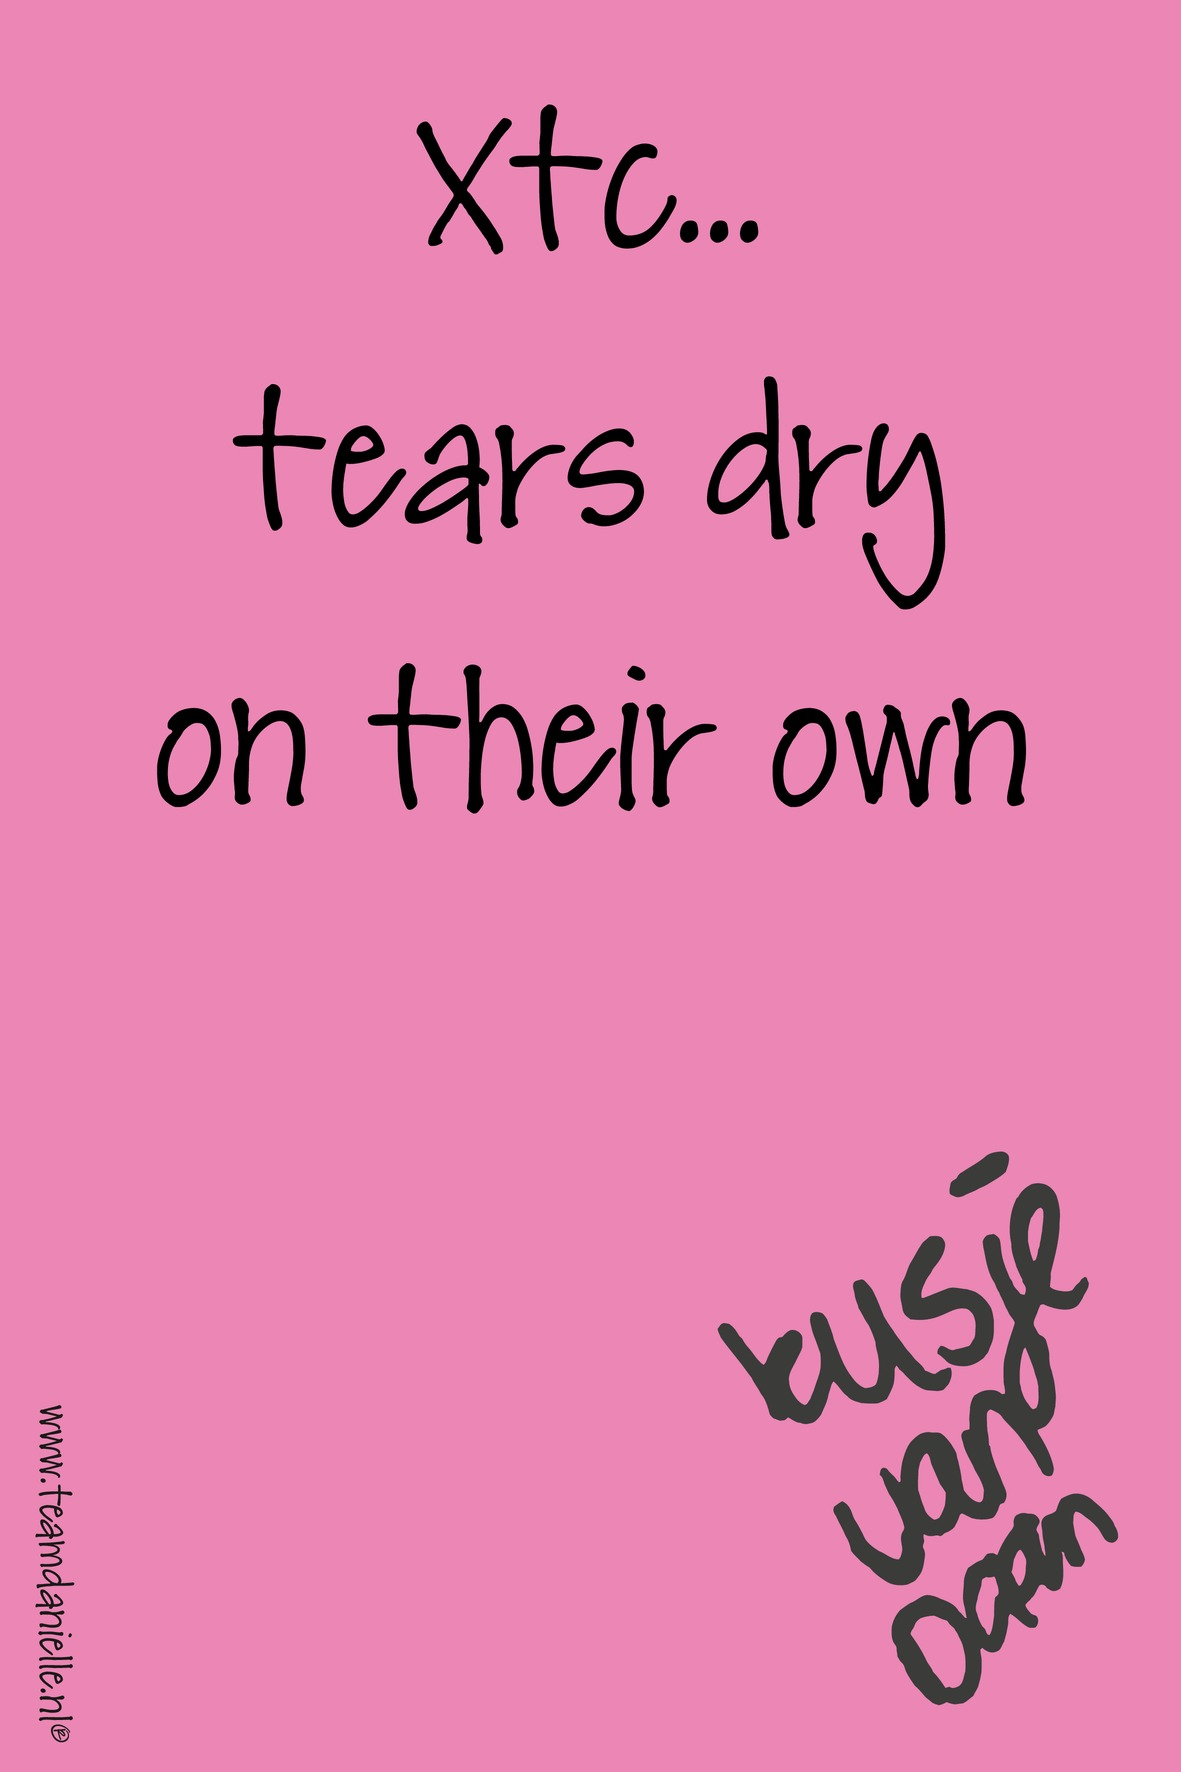 Kusje-180316-m-tears dry on their own